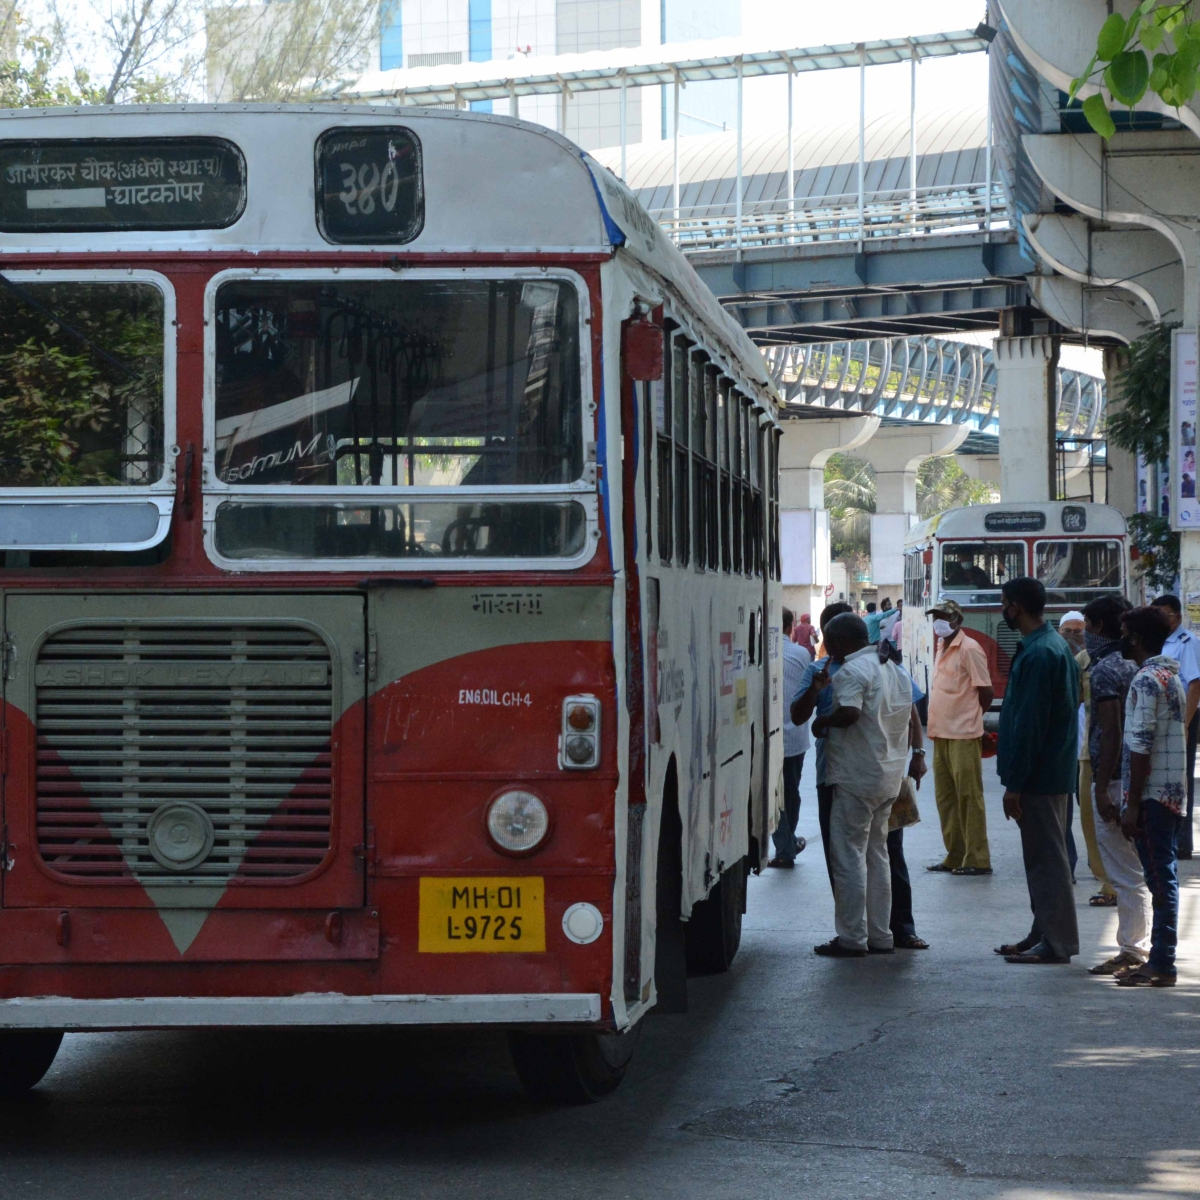 Coronavirus in Mumbai: COVID-19 recovery rate highest among BEST traffic wing staff, says transport authority's CMO Dr Anil Kumar Singhal